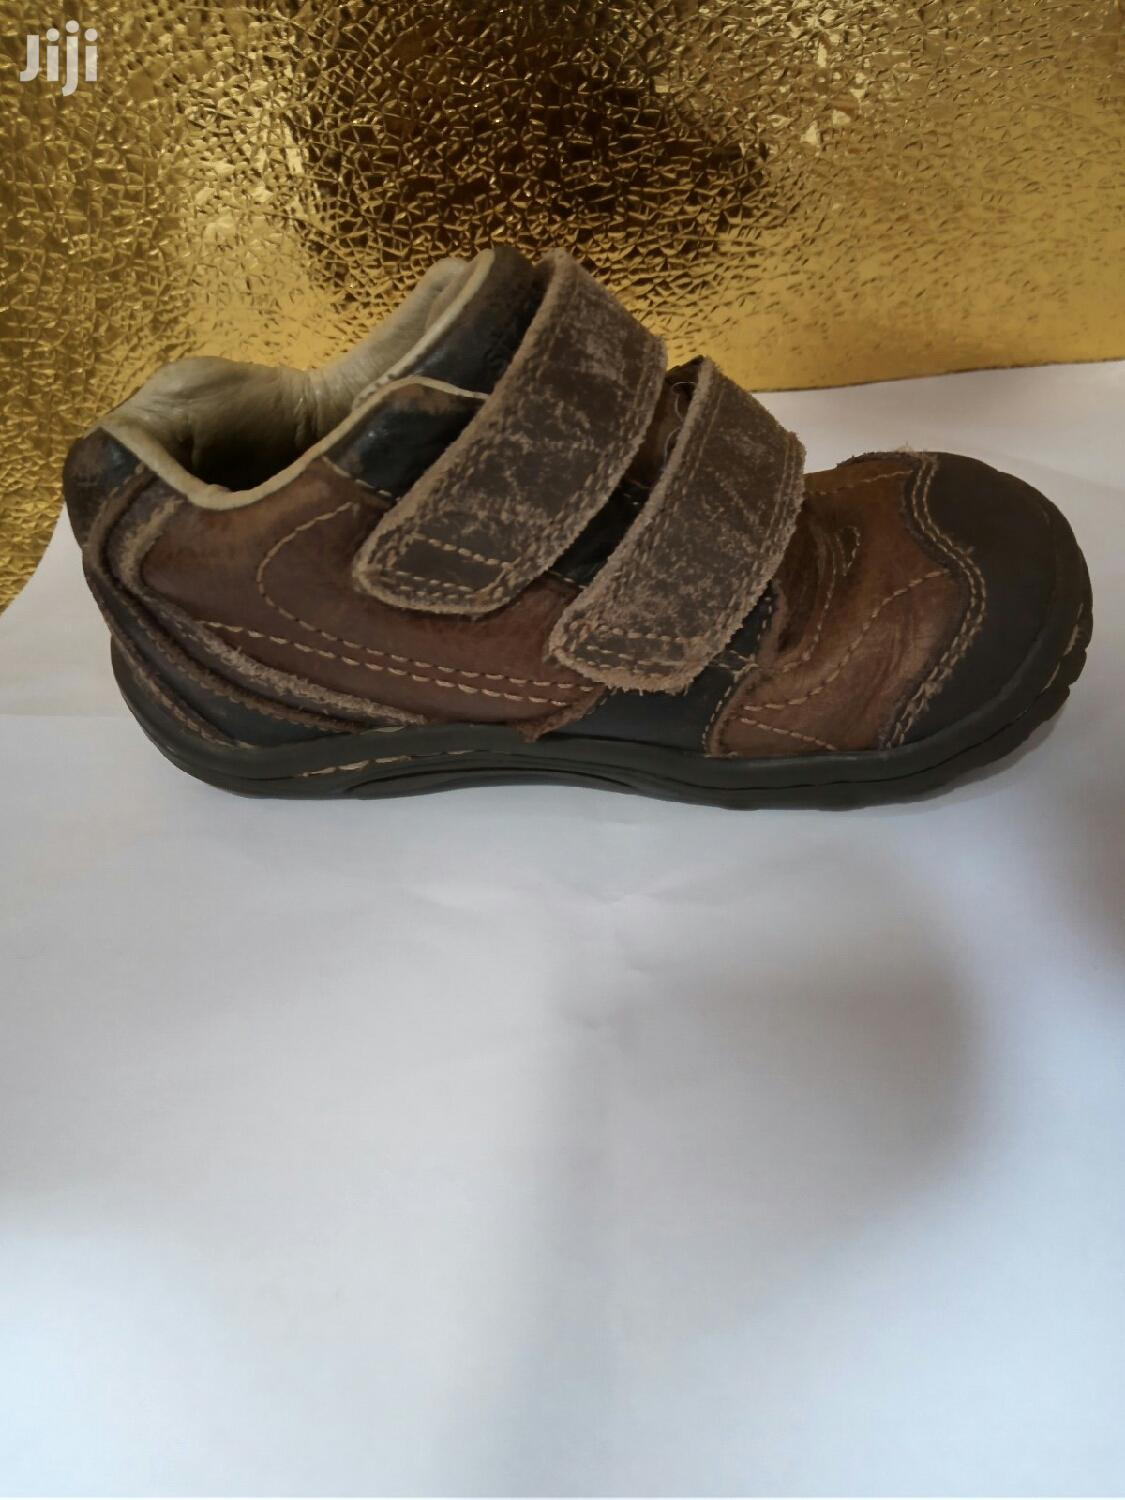 Kids Shoes Available In All Types And Sizes | Children's Shoes for sale in Kampala, Central Region, Uganda